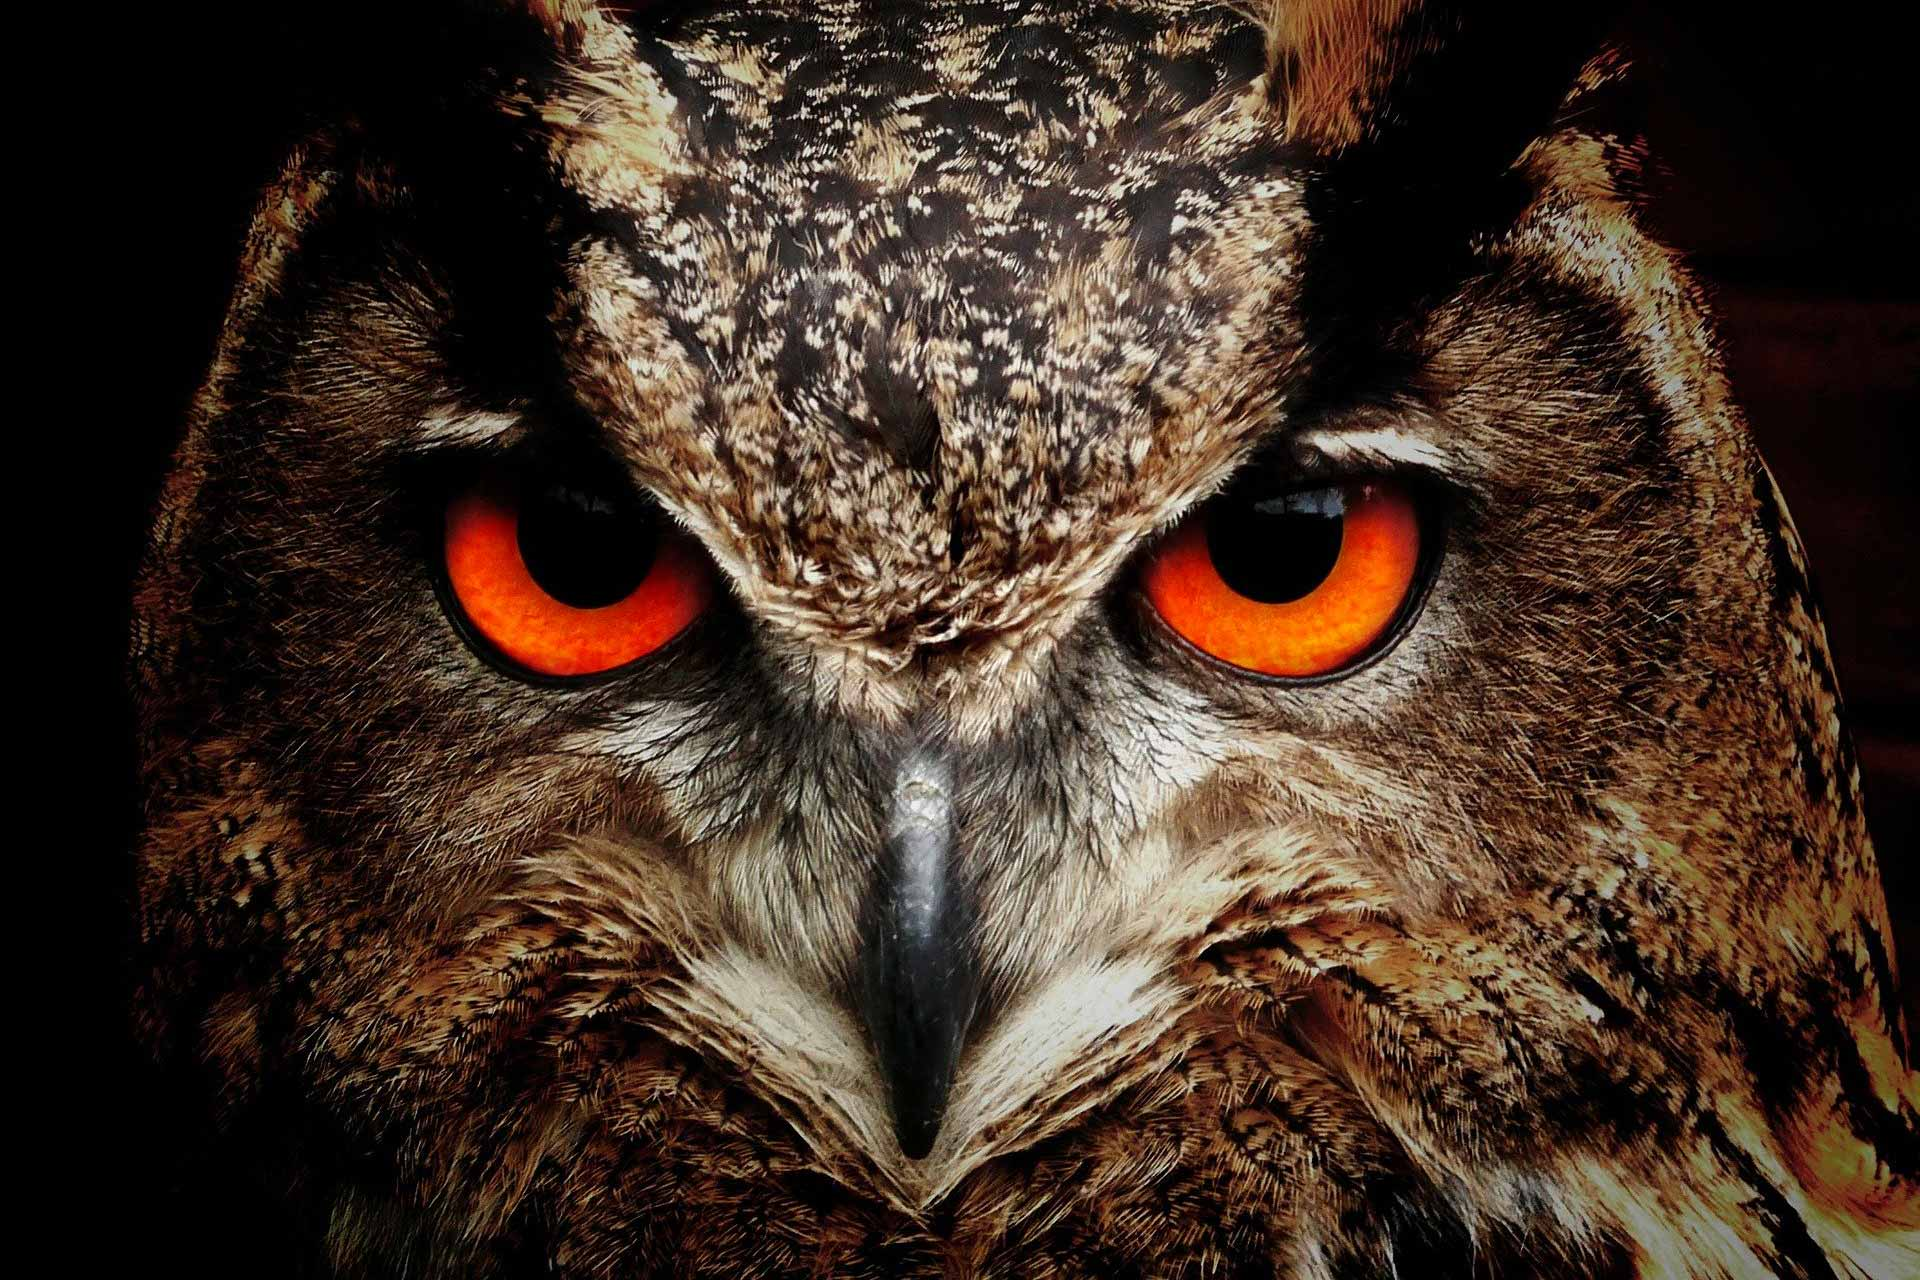 angry owl - Freedom of Speech